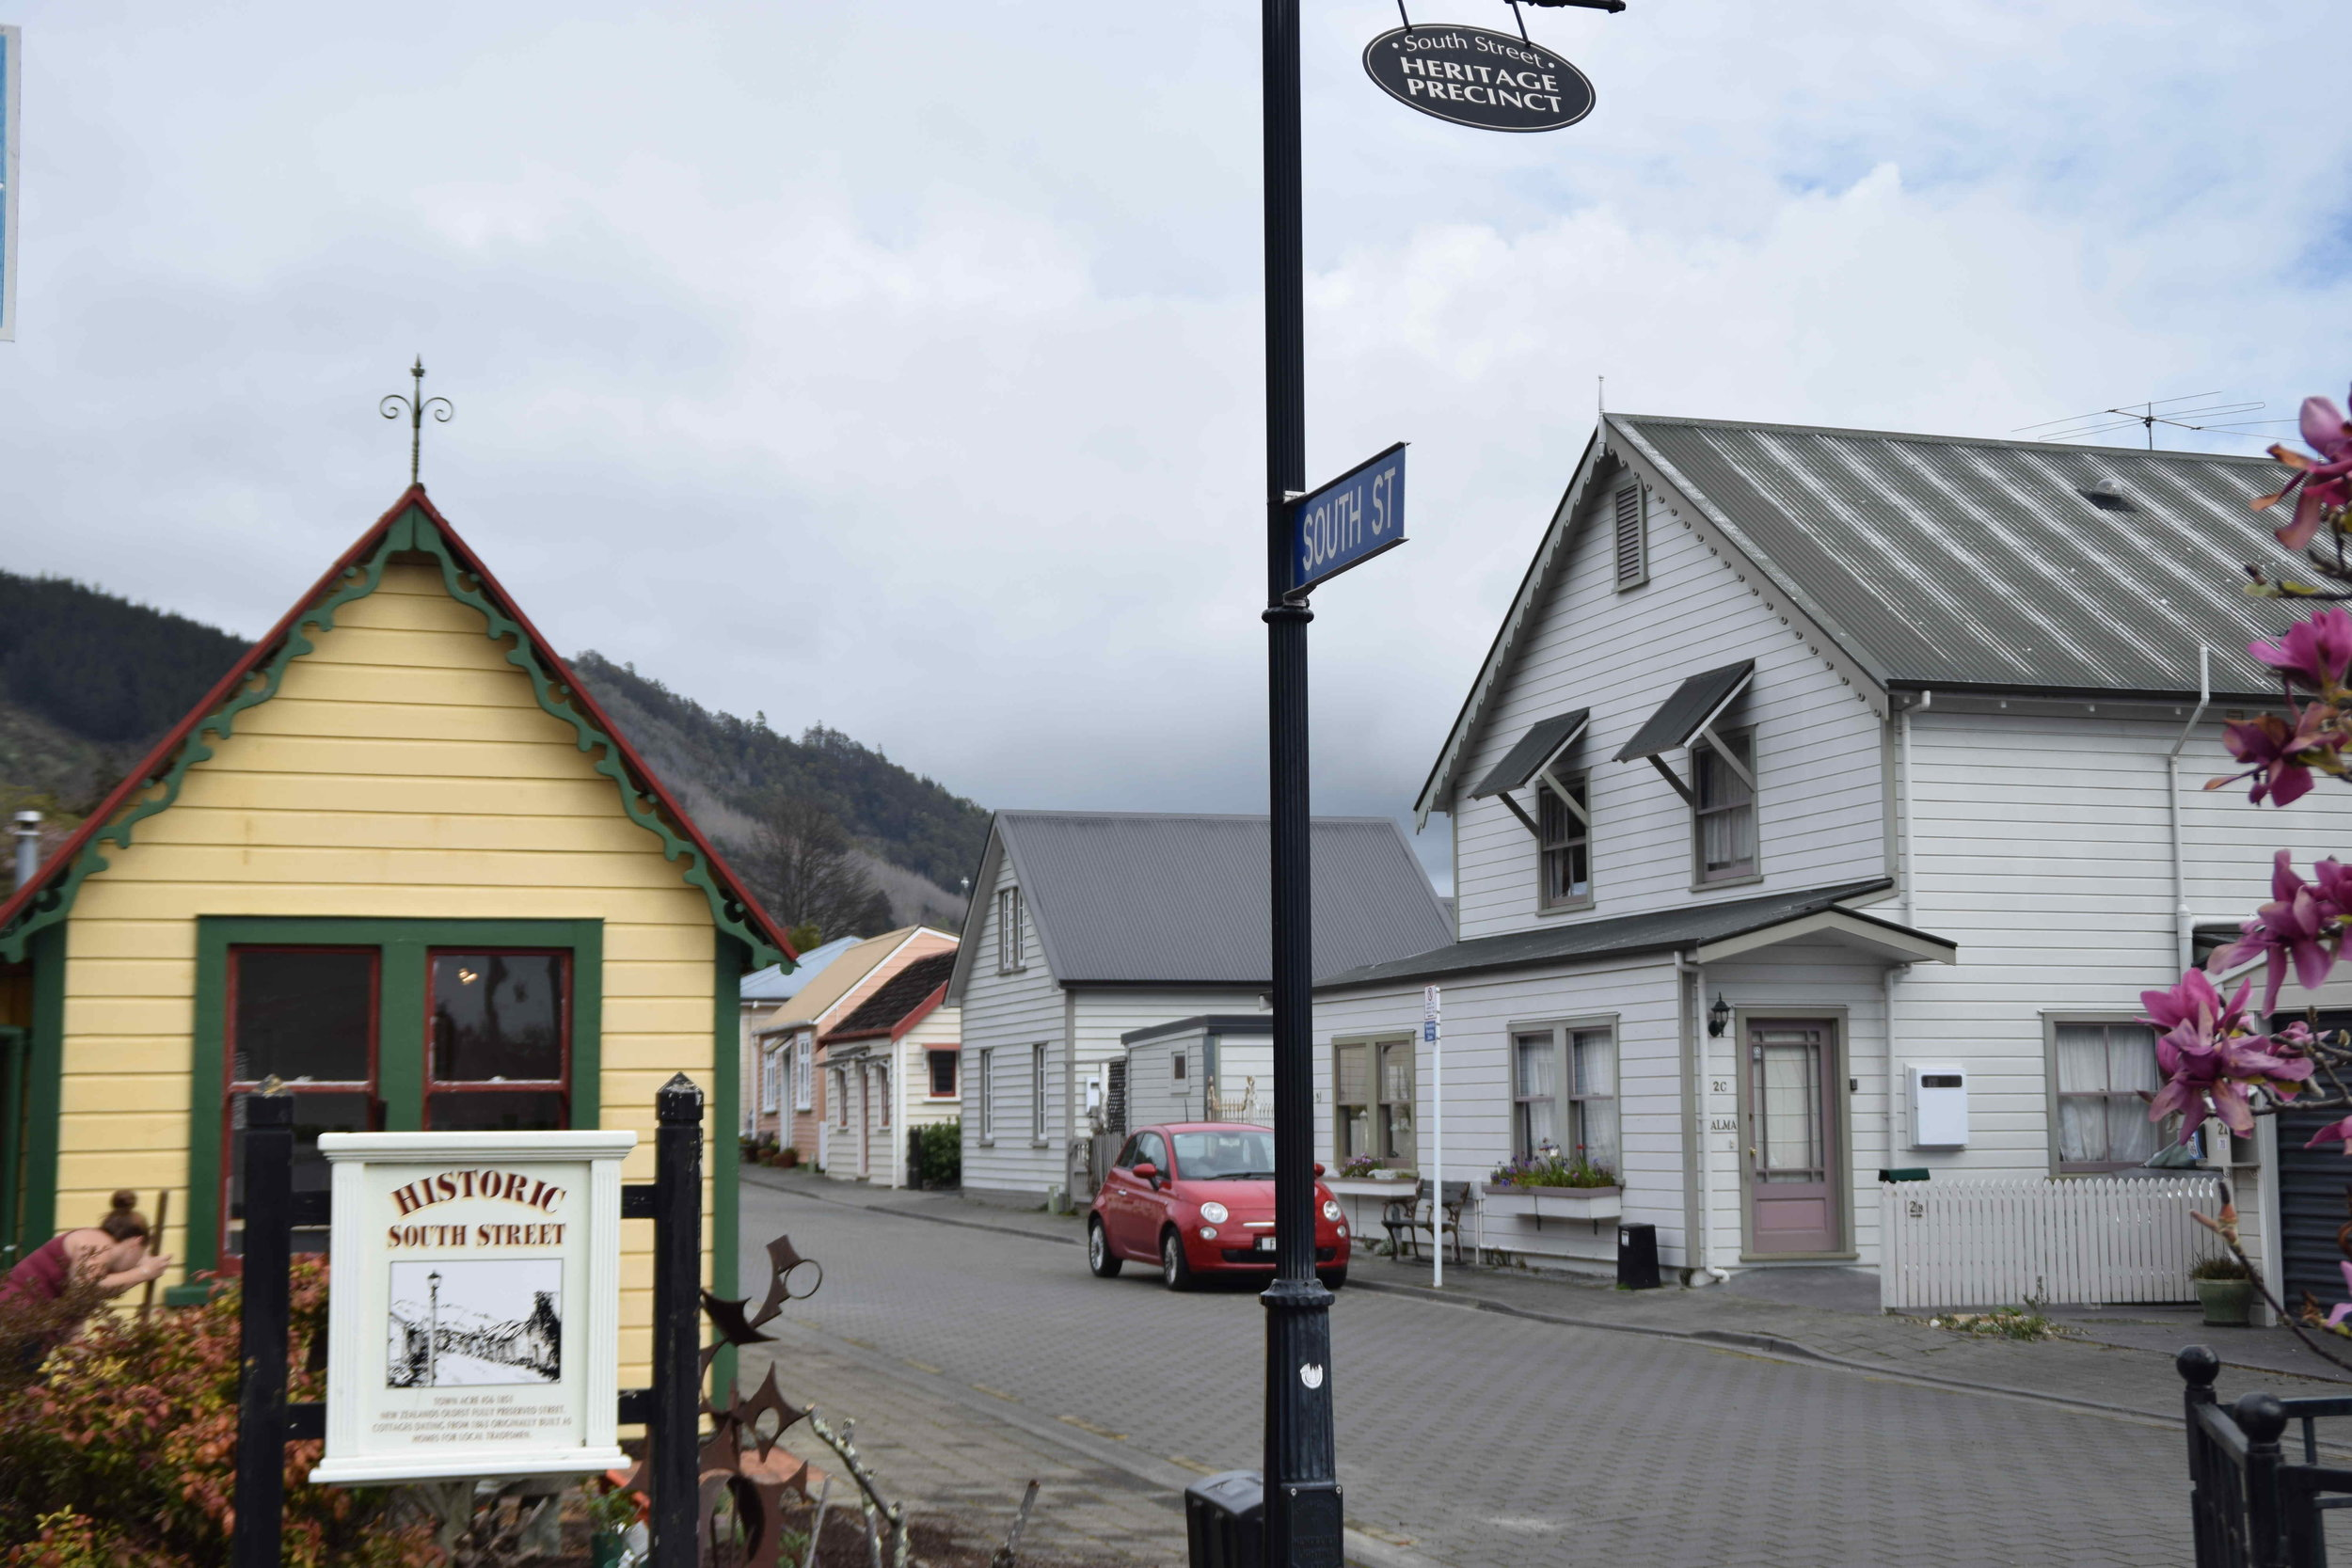 Historic South Street in Nelson. New Zealand's oldest fully preserved street. Cottages dating from 1863 orginally built as homes for local tradesmen.